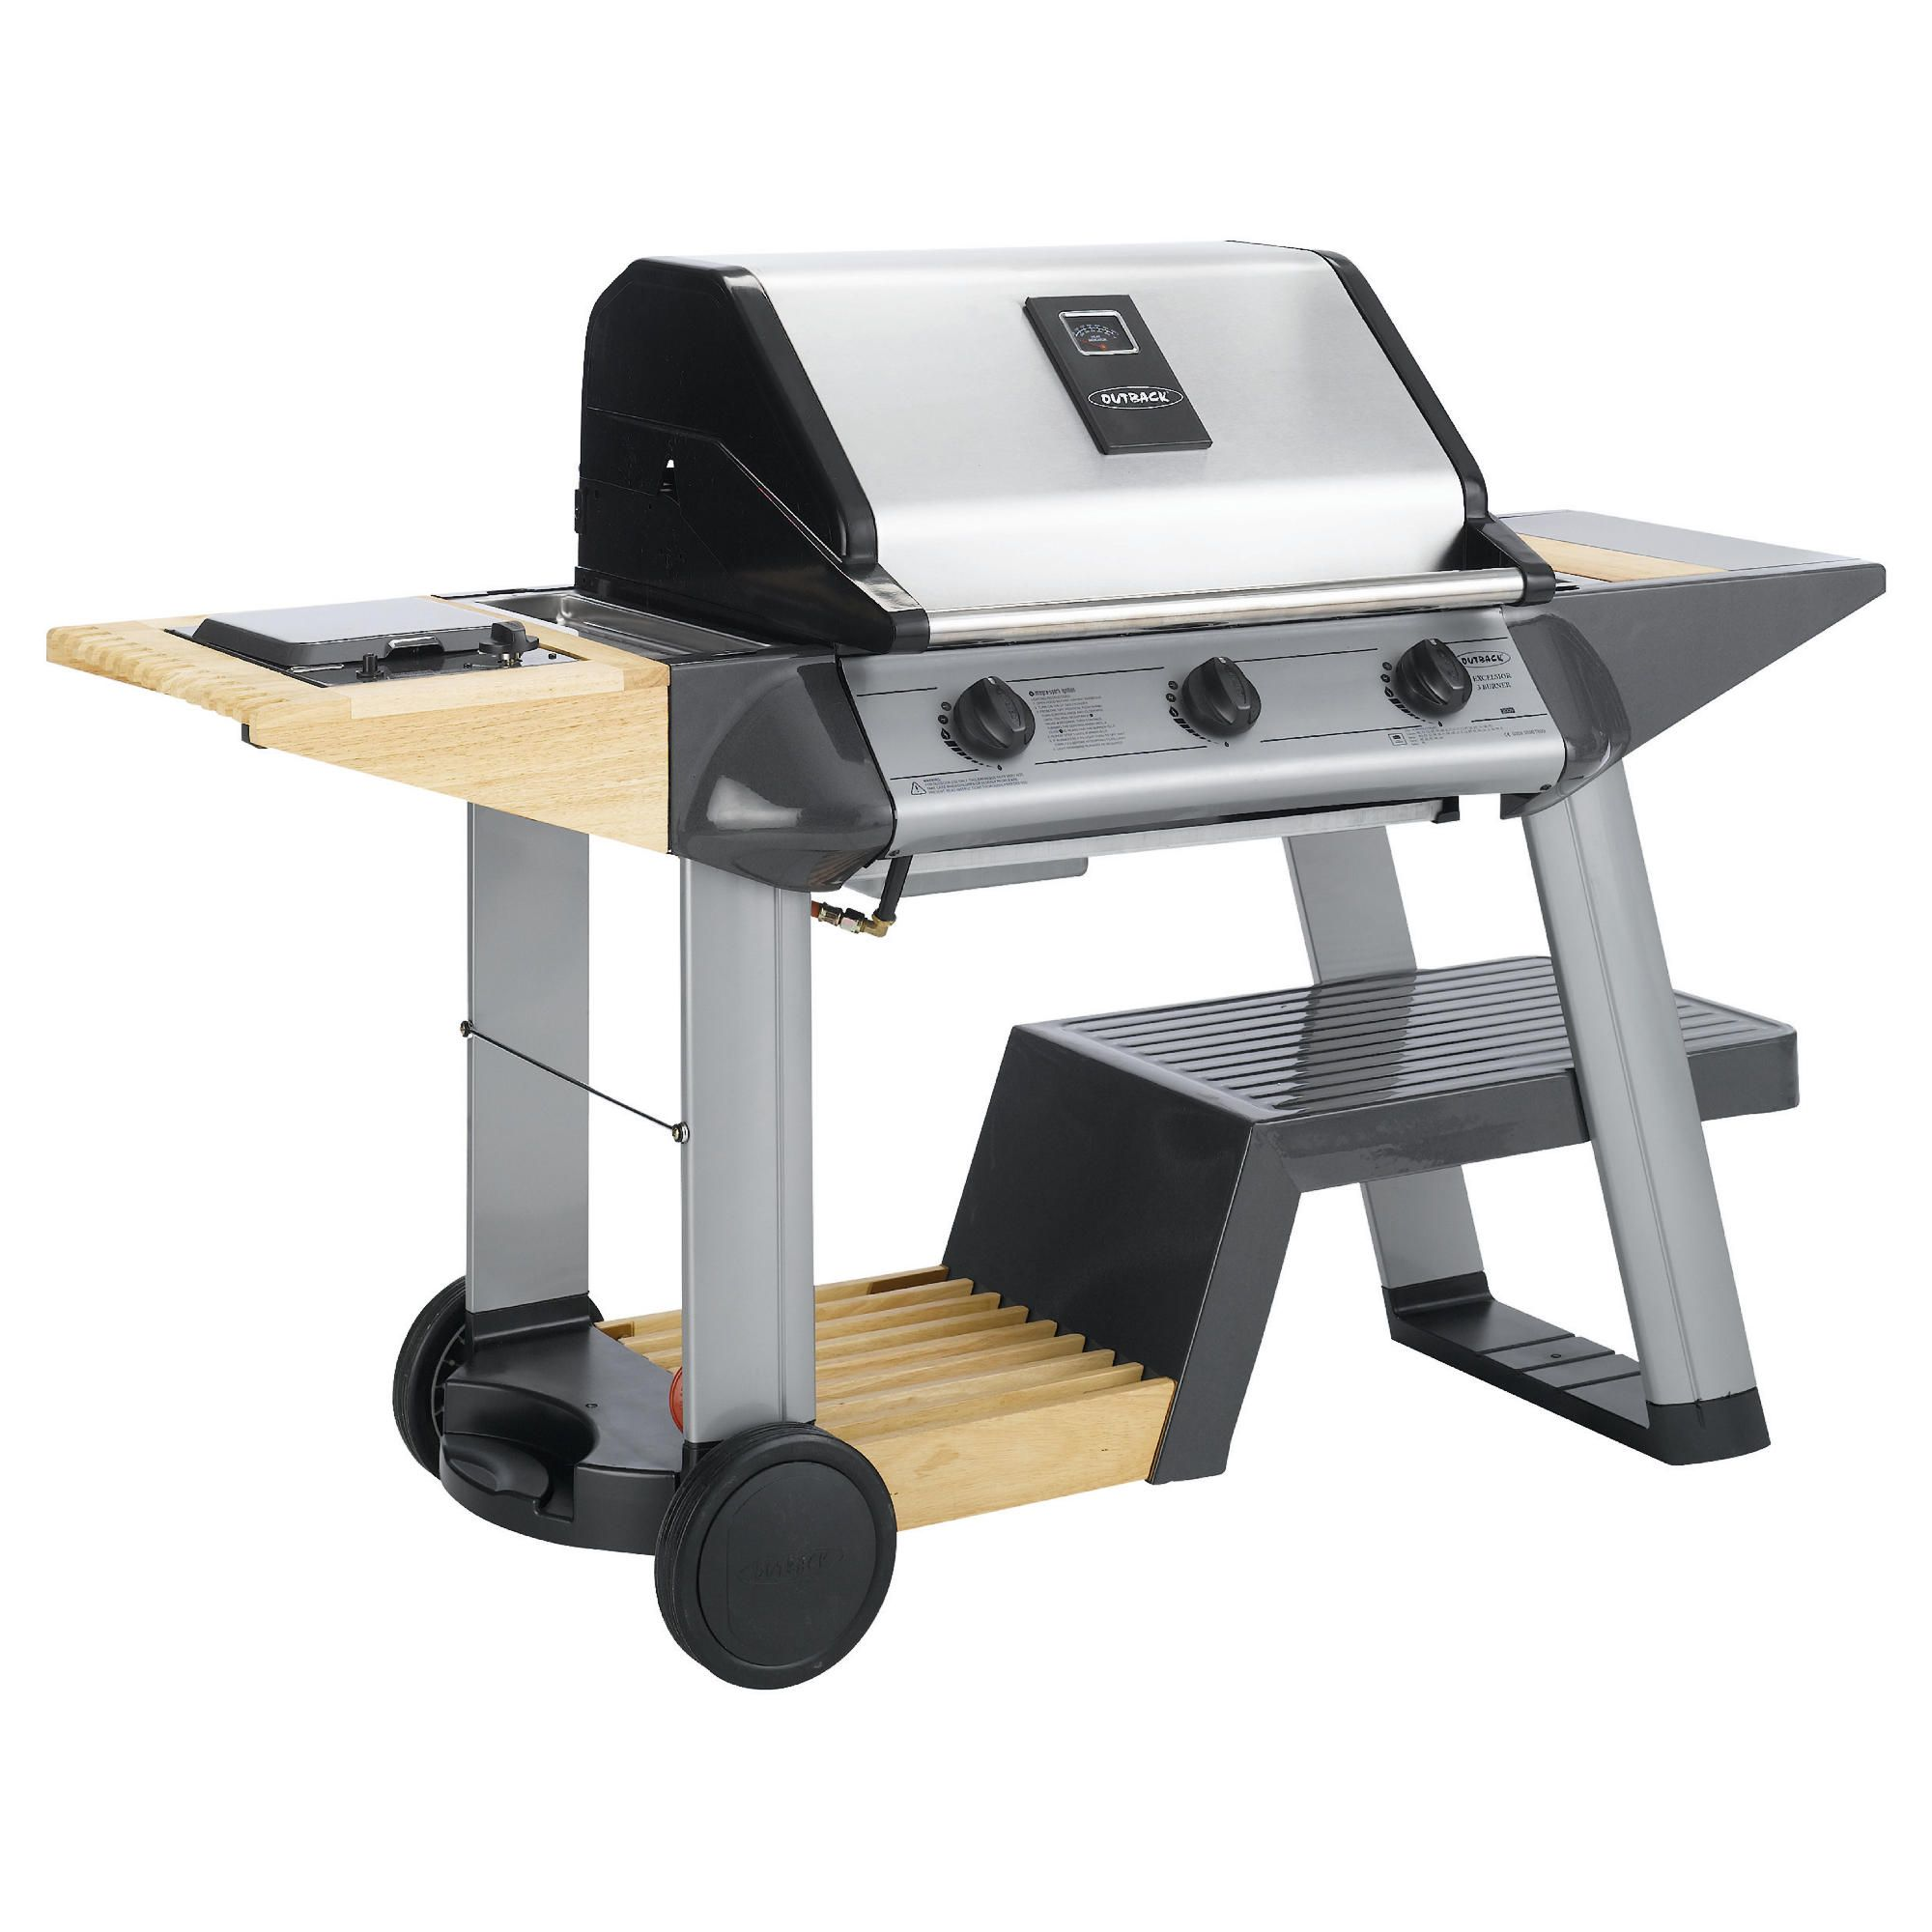 Outback Excelsior 3 Burner Gas BBQ with Cover at Tesco Direct